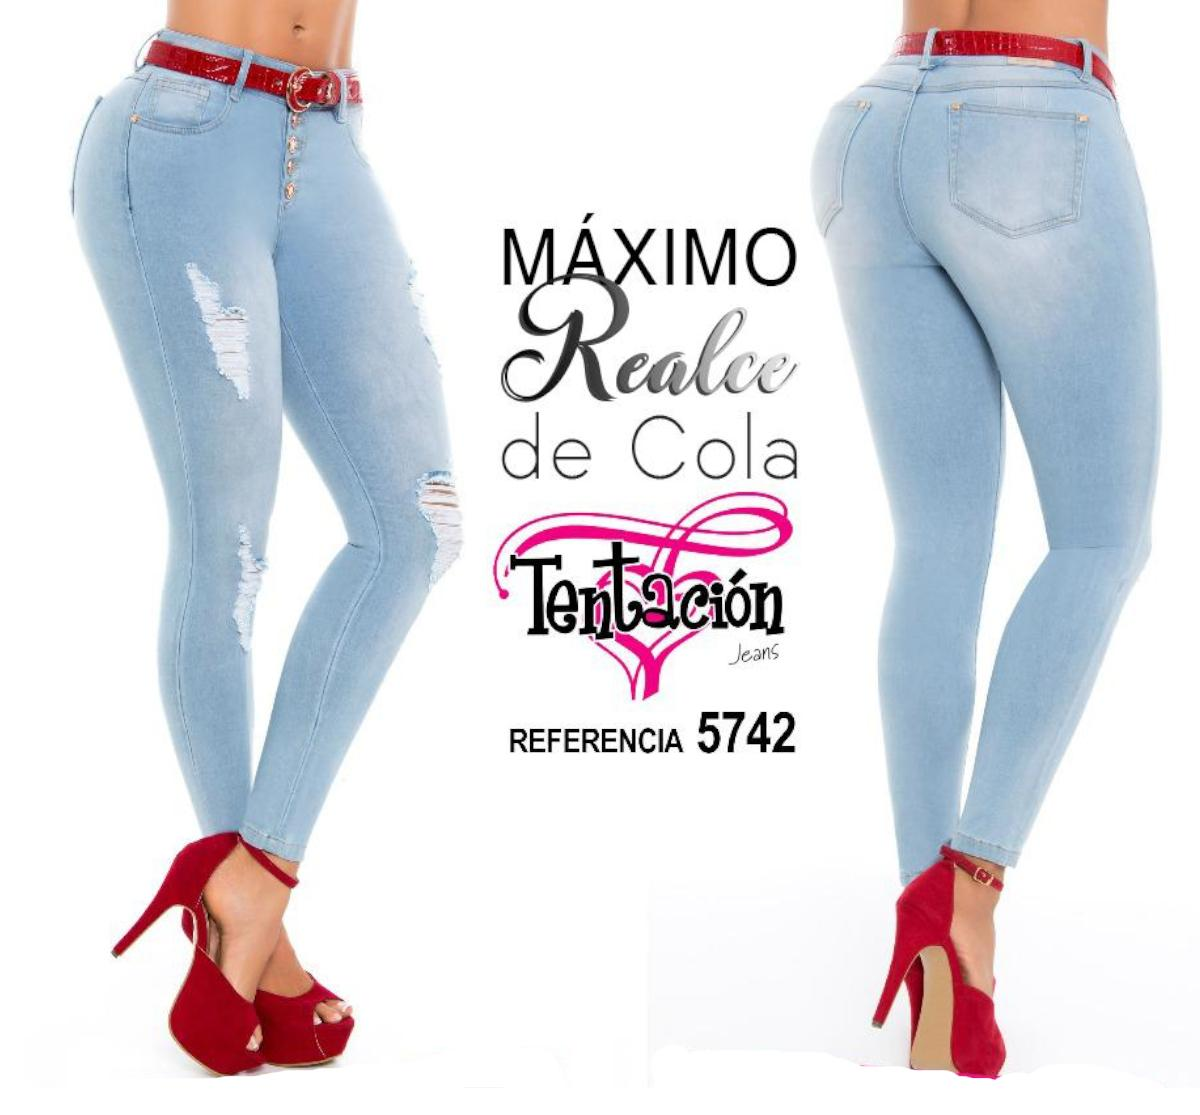 Jeans Vaqueros Colombianos Levanta Cola Máximo Realce Color Azul Hielo y Destroyer